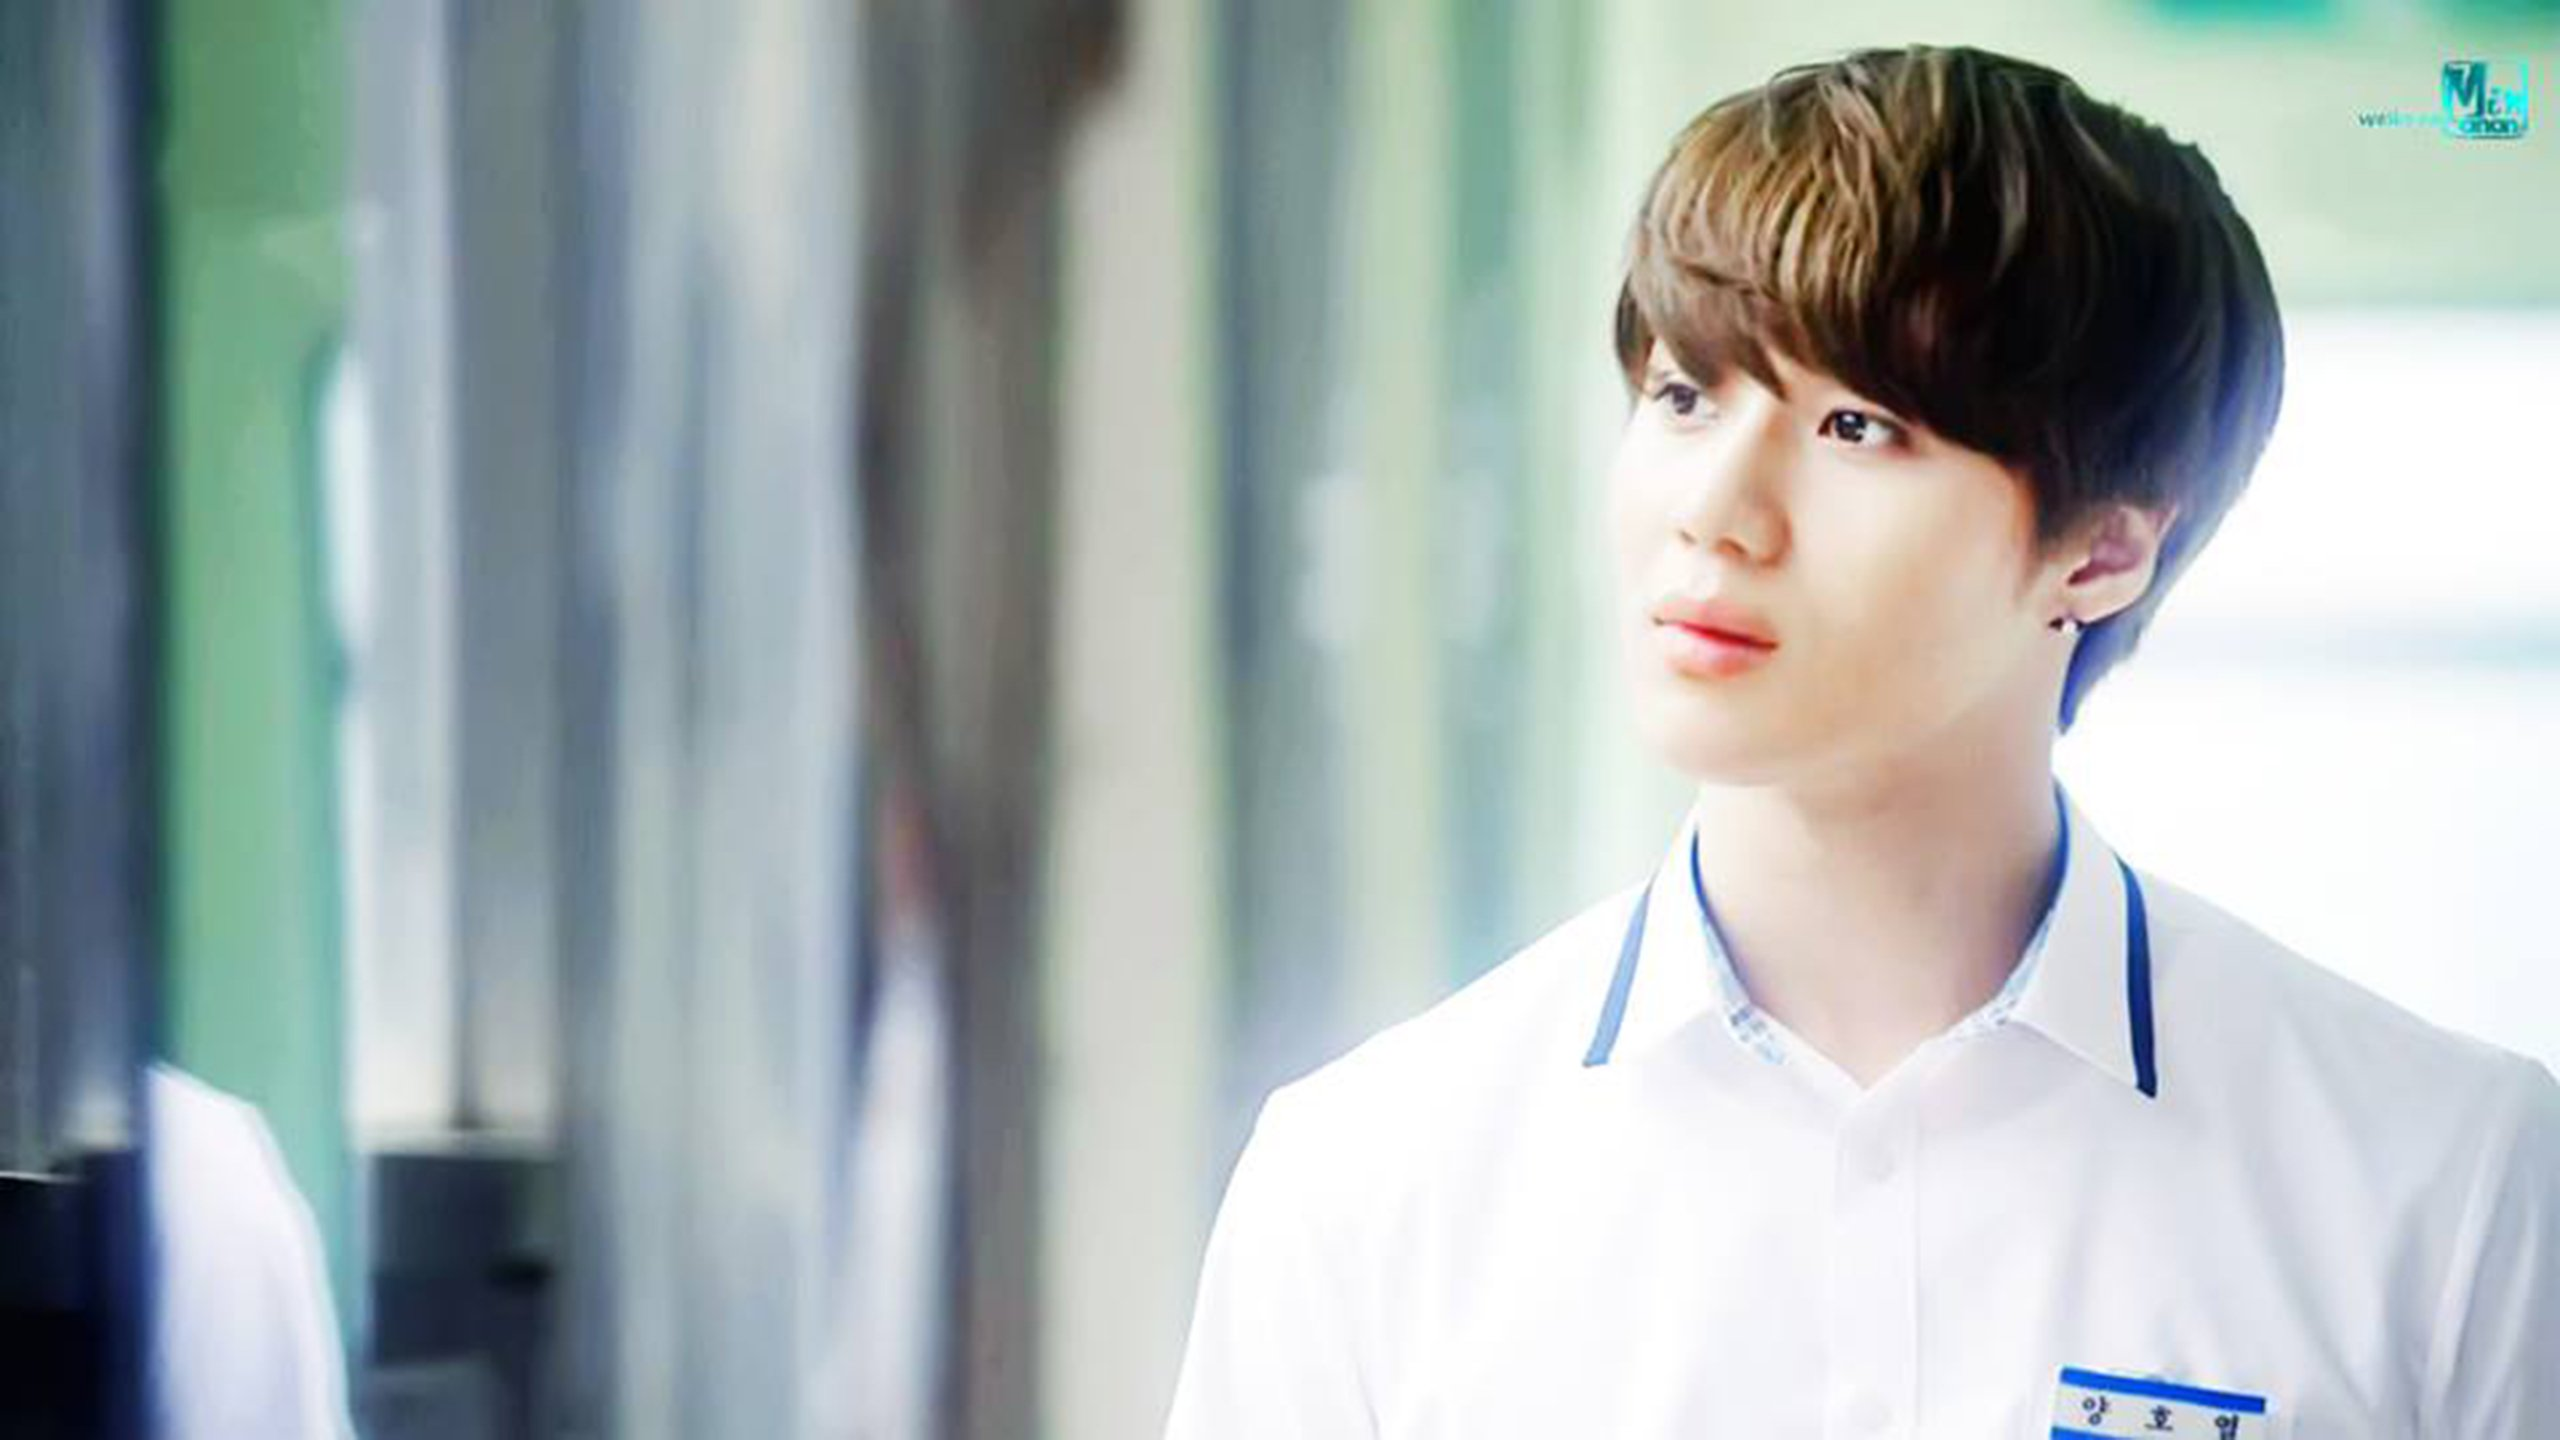 Taemin Wallpaper   SHINee Taemin Gif Wallpaper 36227632 2560x1440